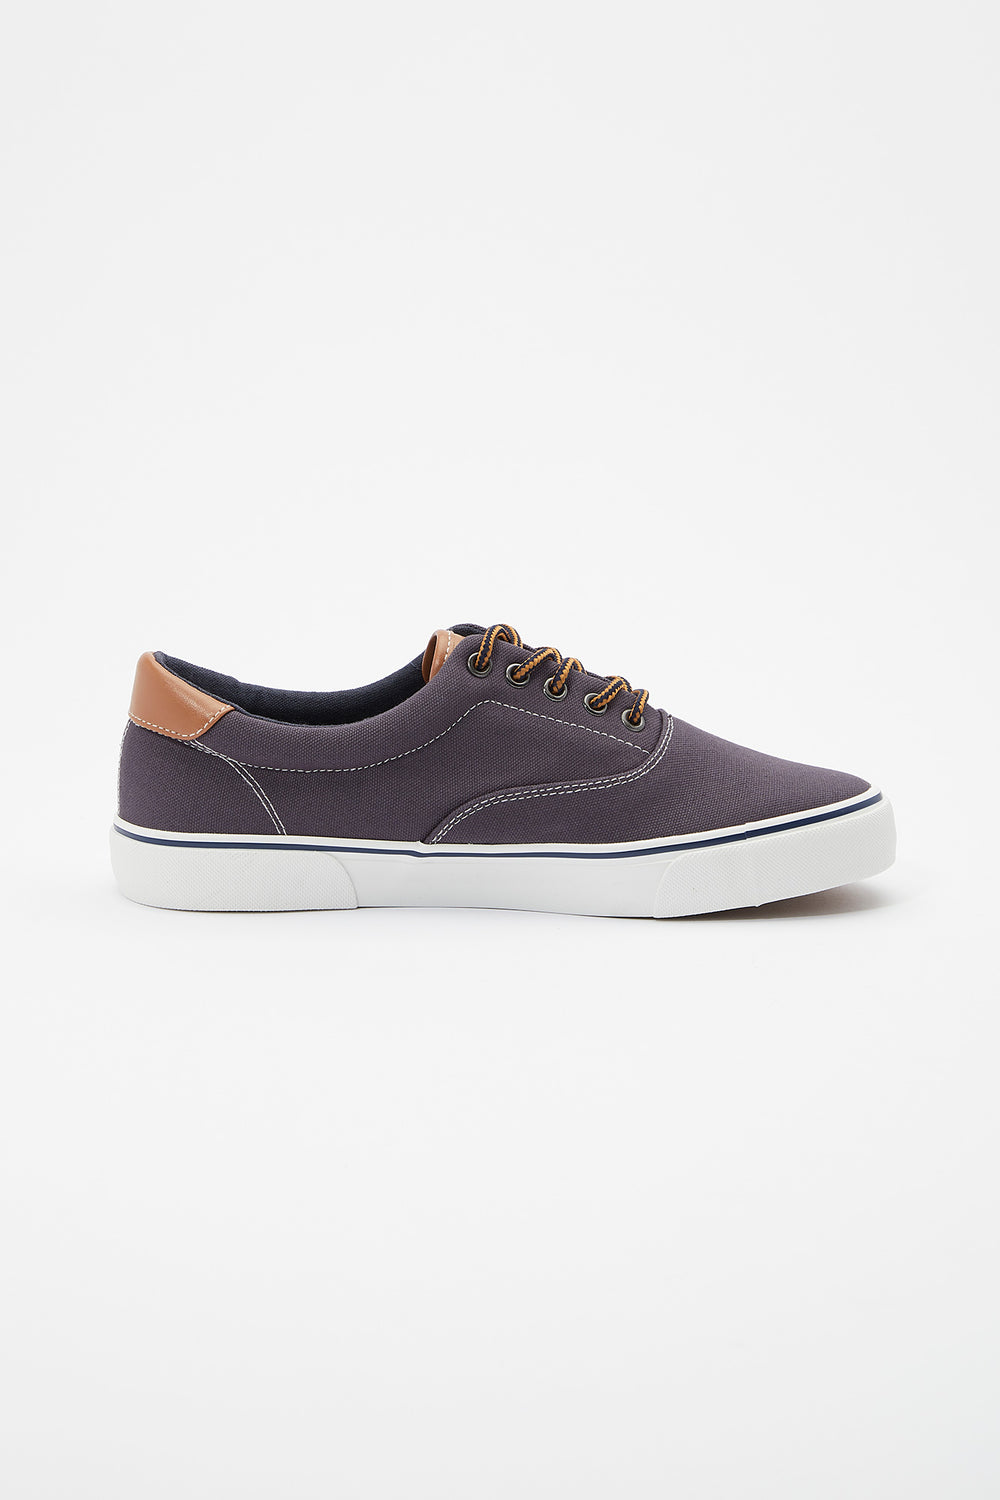 Zoo York Mens Jax Shoes Navy